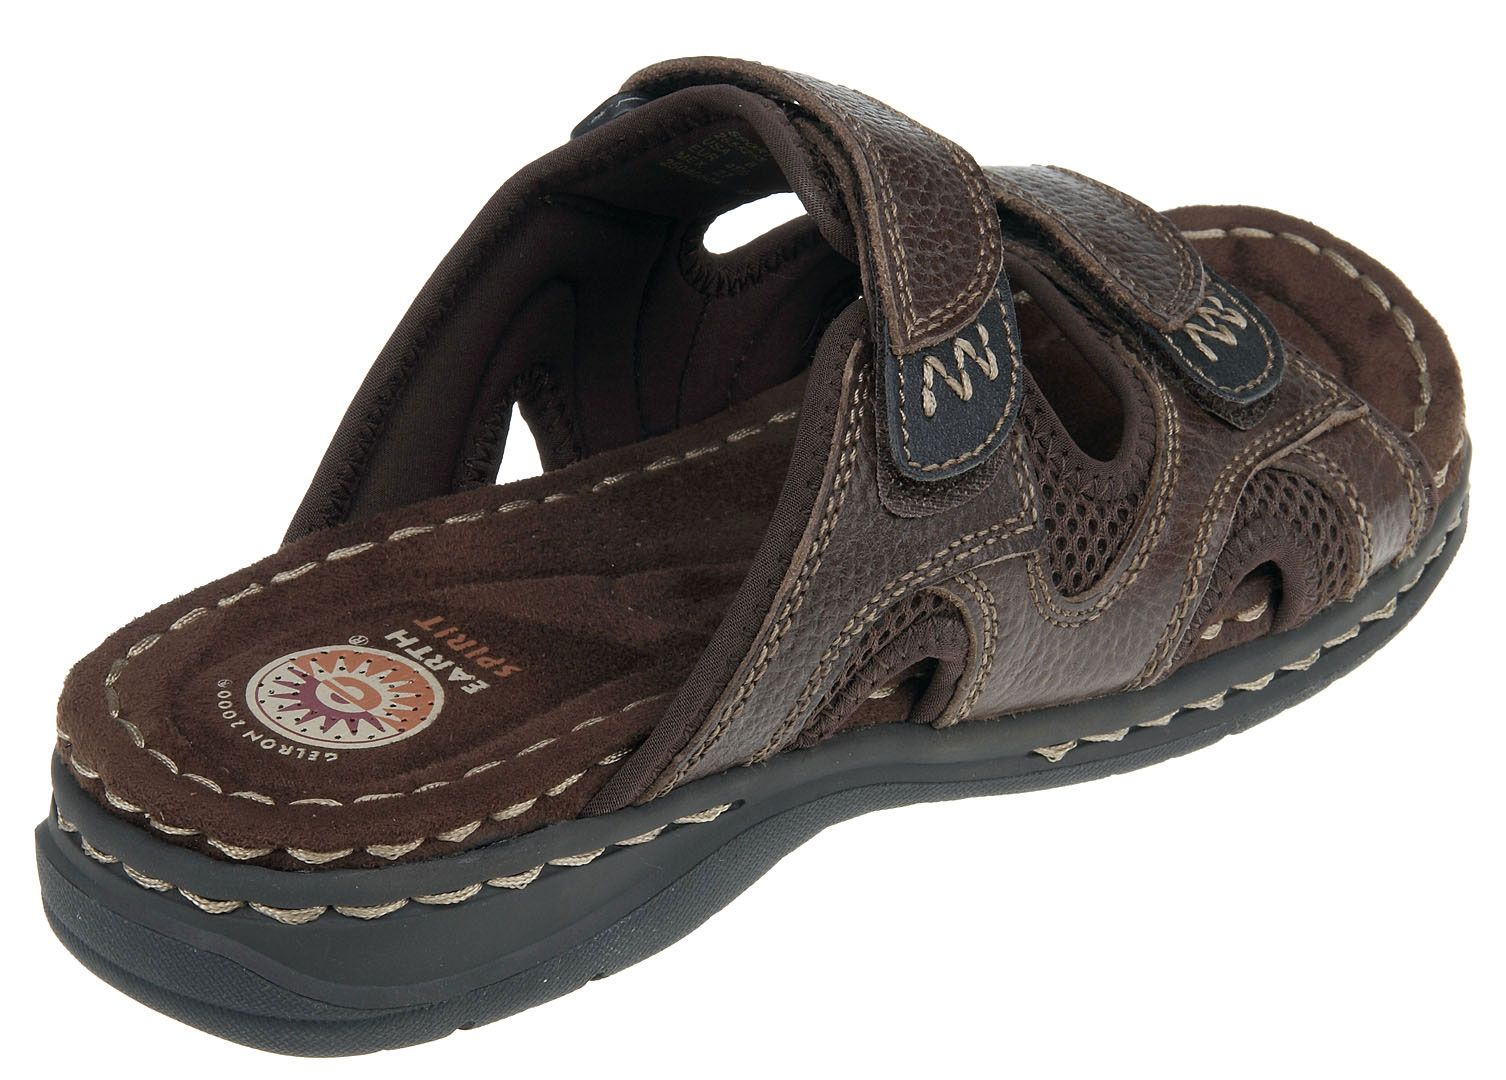 Earth Spirit Sandals for Men | Earth Spirit Sport